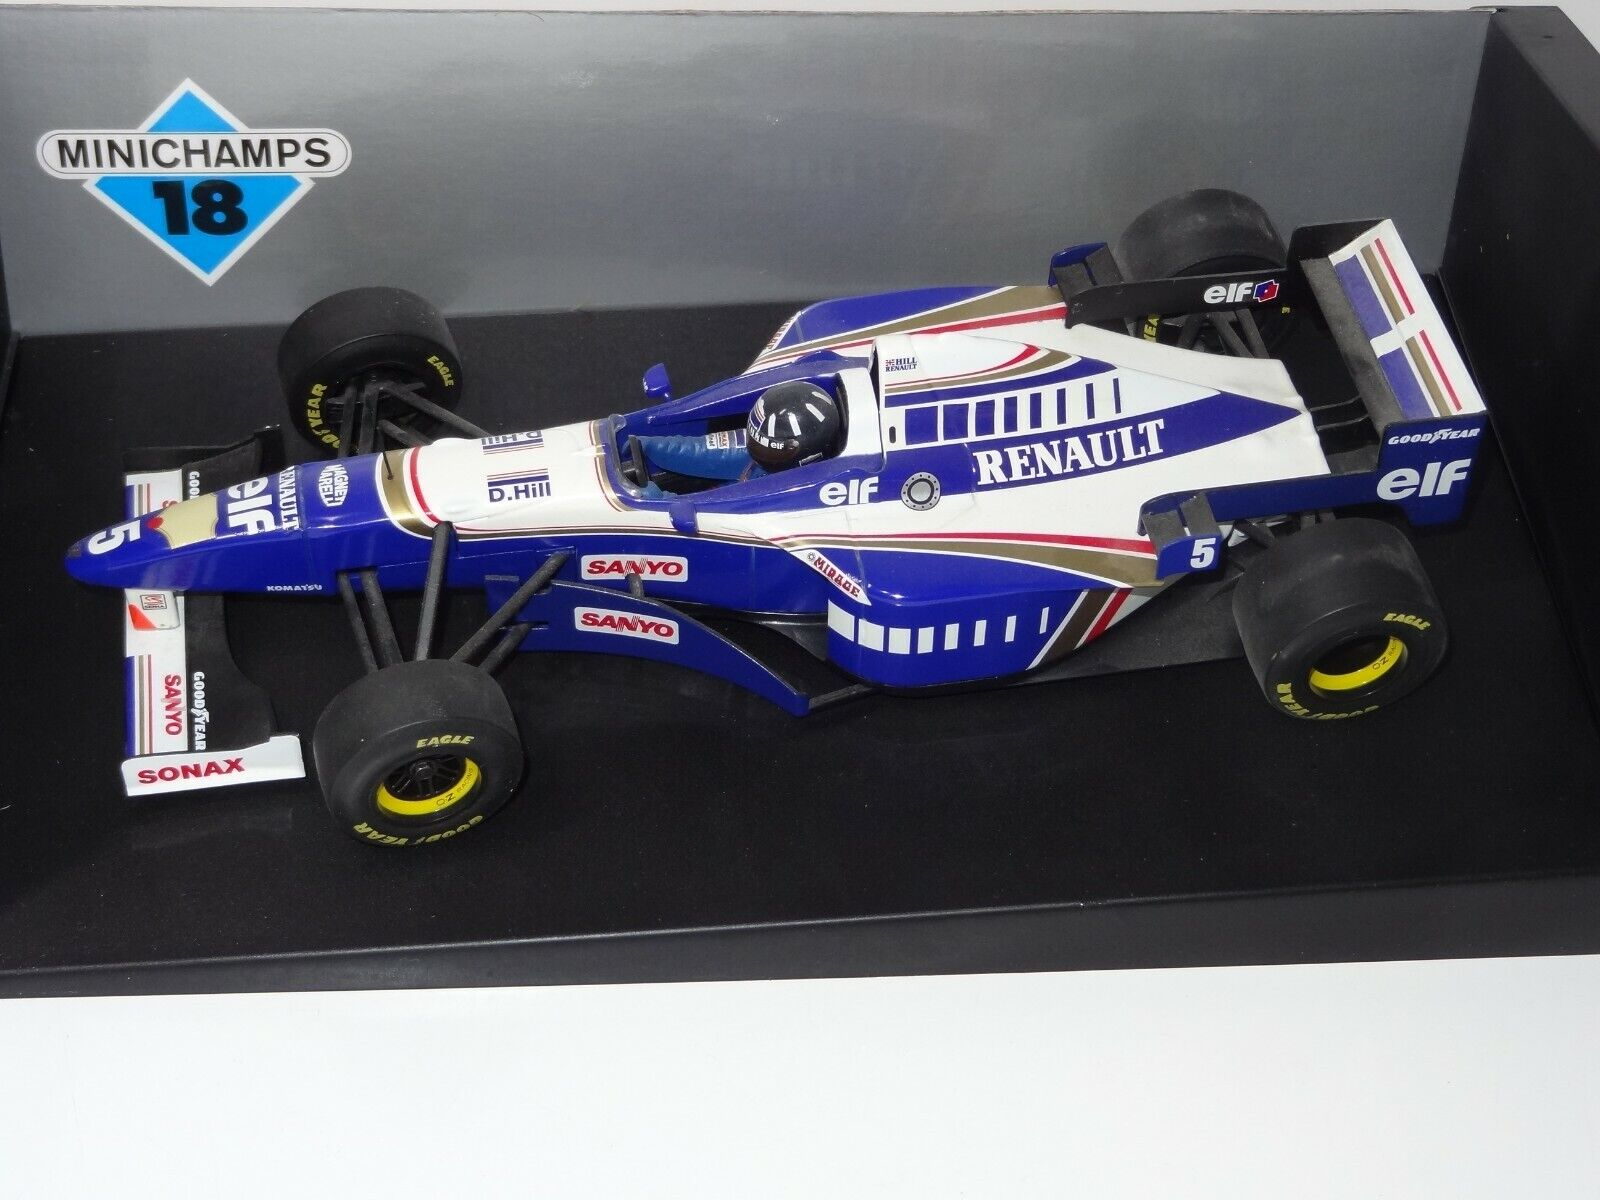 (W) Pauls model art Minichamps 1 18 F1 WILLIAMS RENAULT FW 18 D Hill Comme neuf boxed